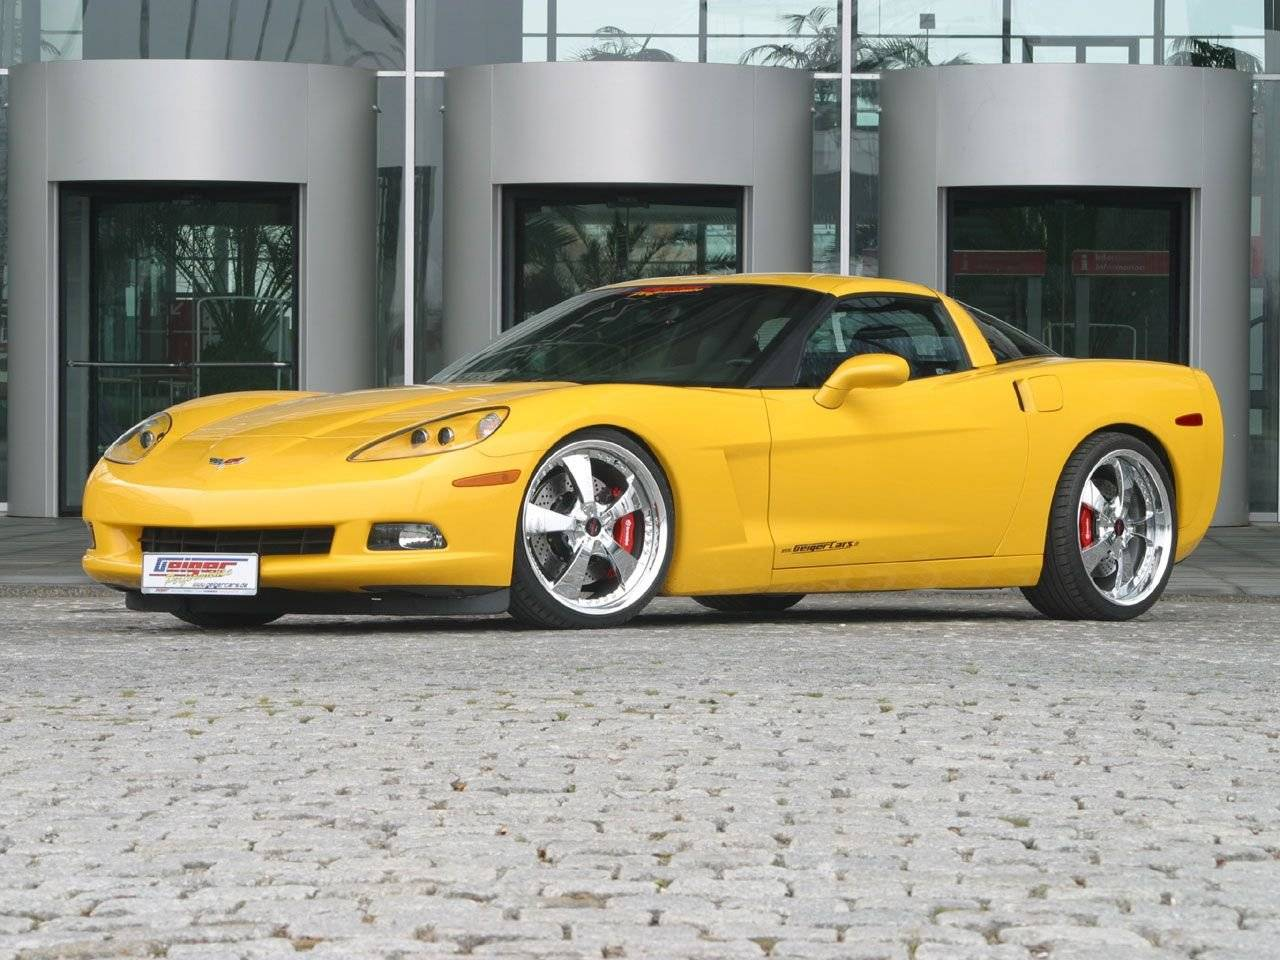 geigercars tuned corvette c6 tuning styling. Black Bedroom Furniture Sets. Home Design Ideas